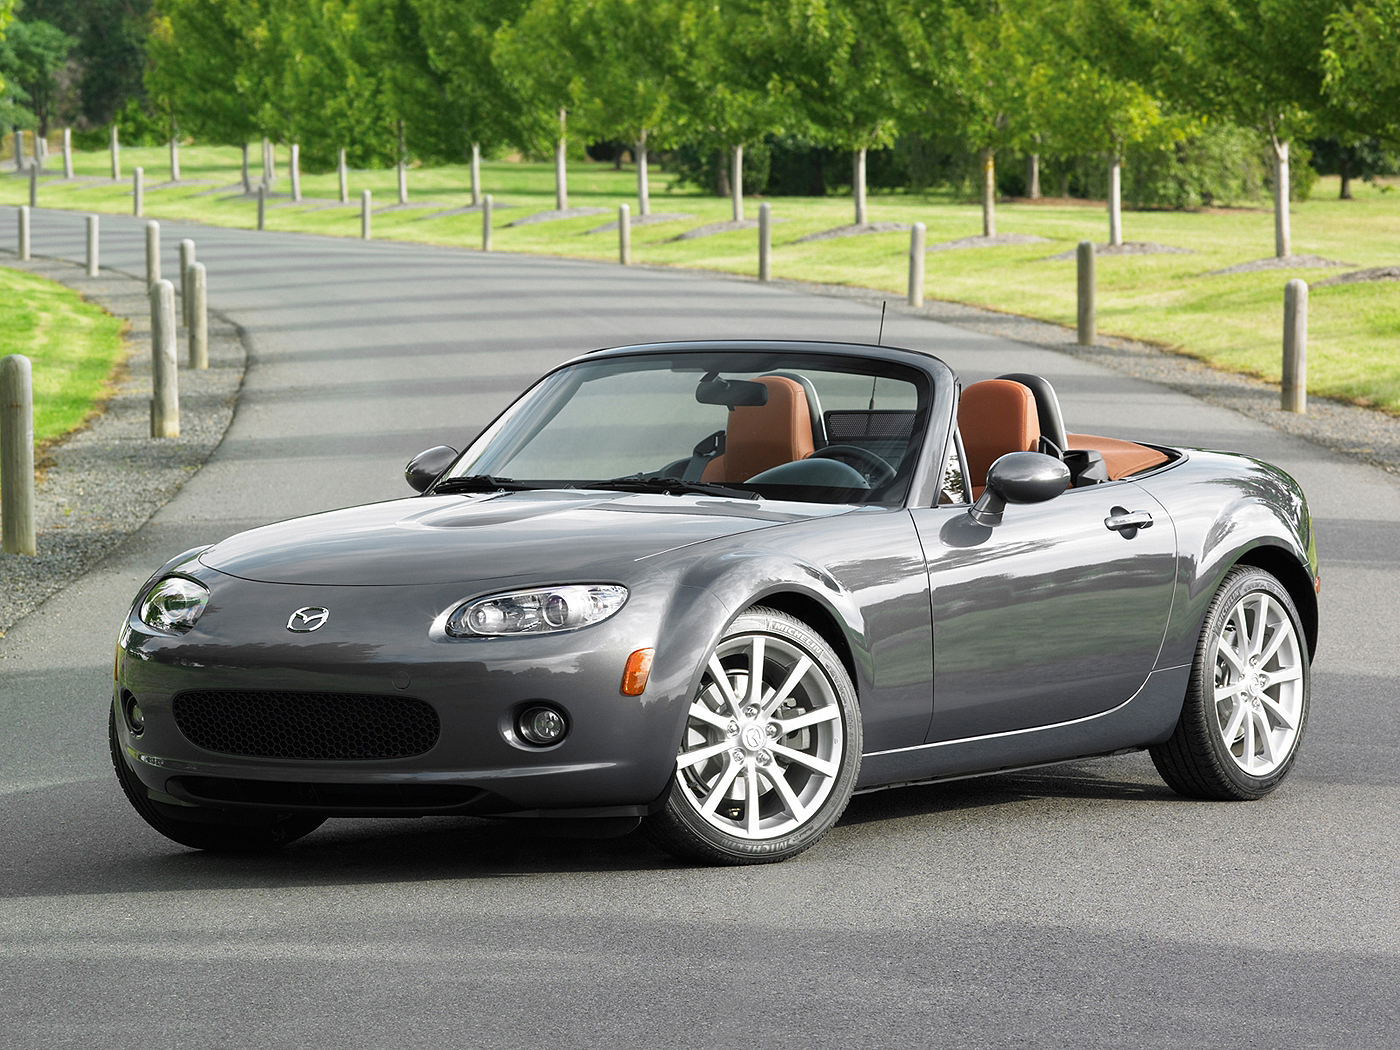 2004 Mazda MX-5 Convertible 2-door